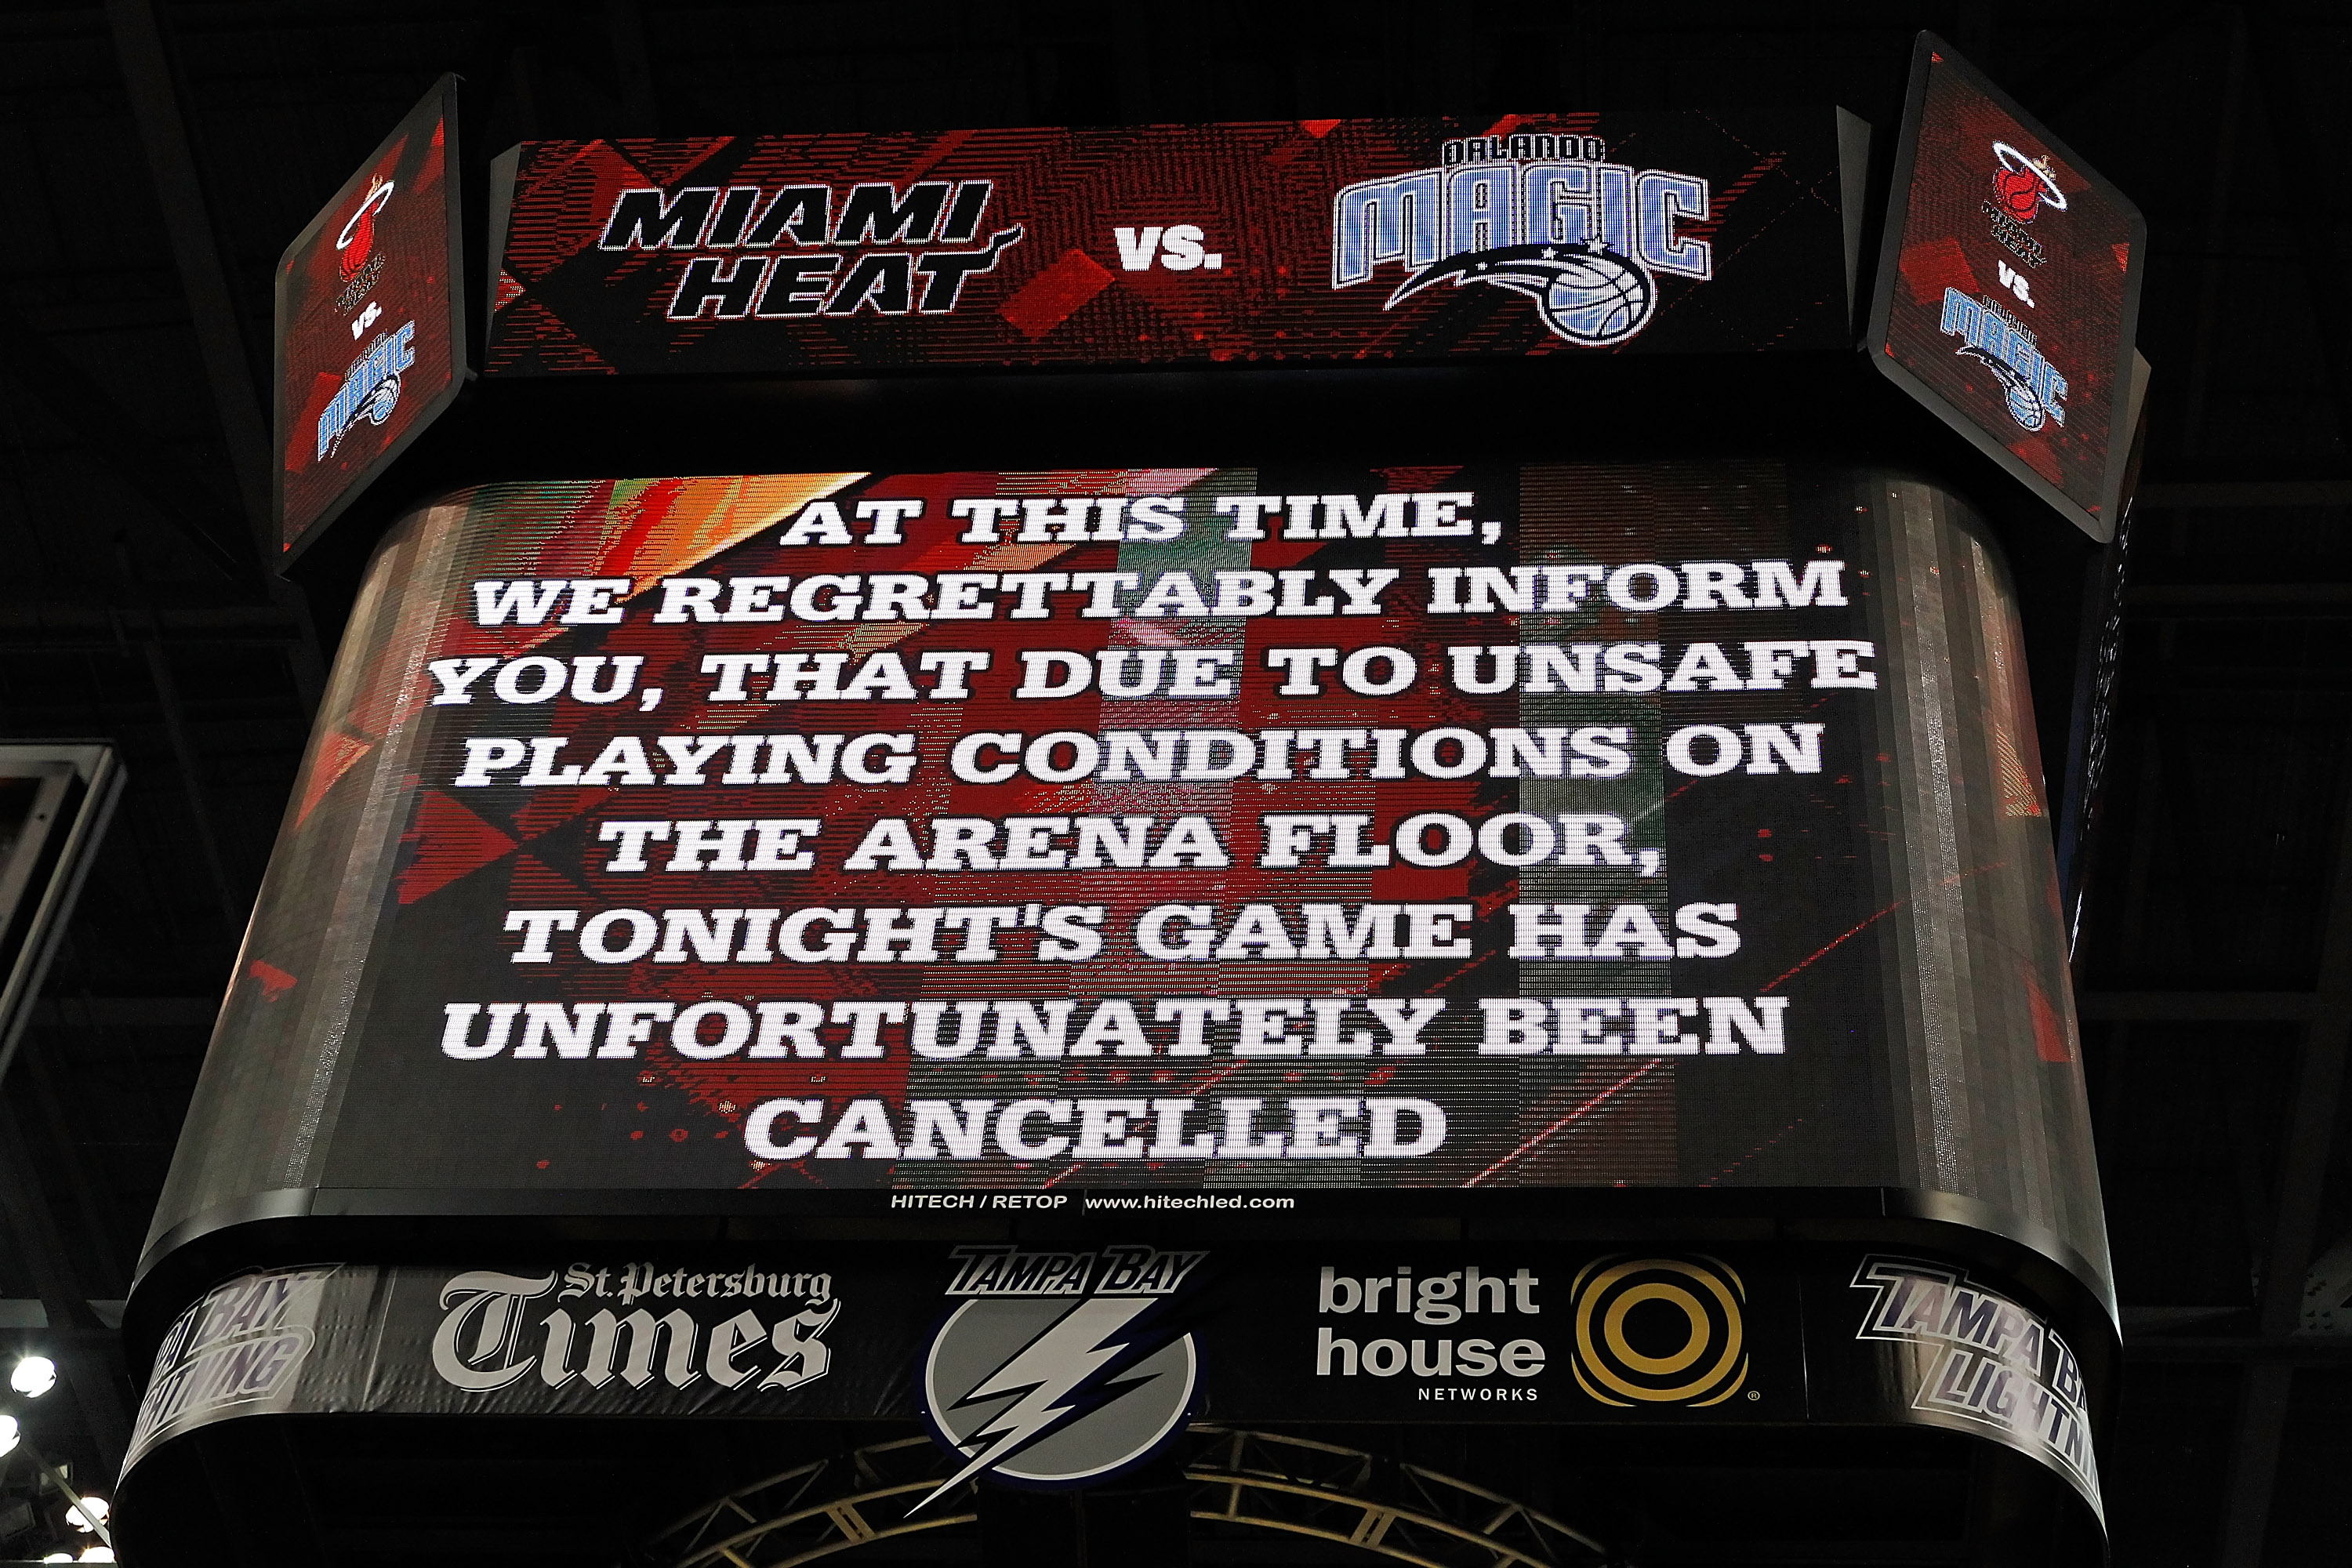 TAMPA, FL - OCTOBER 22:  The scoreboard notifying fans that the game between the Miami Heat and the Orlando Magic was cancelled at the St. Pete Times Forum on October 22, 2010 in Tampa, Florida.  NOTE TO USER: User expressly acknowledges and agrees that,